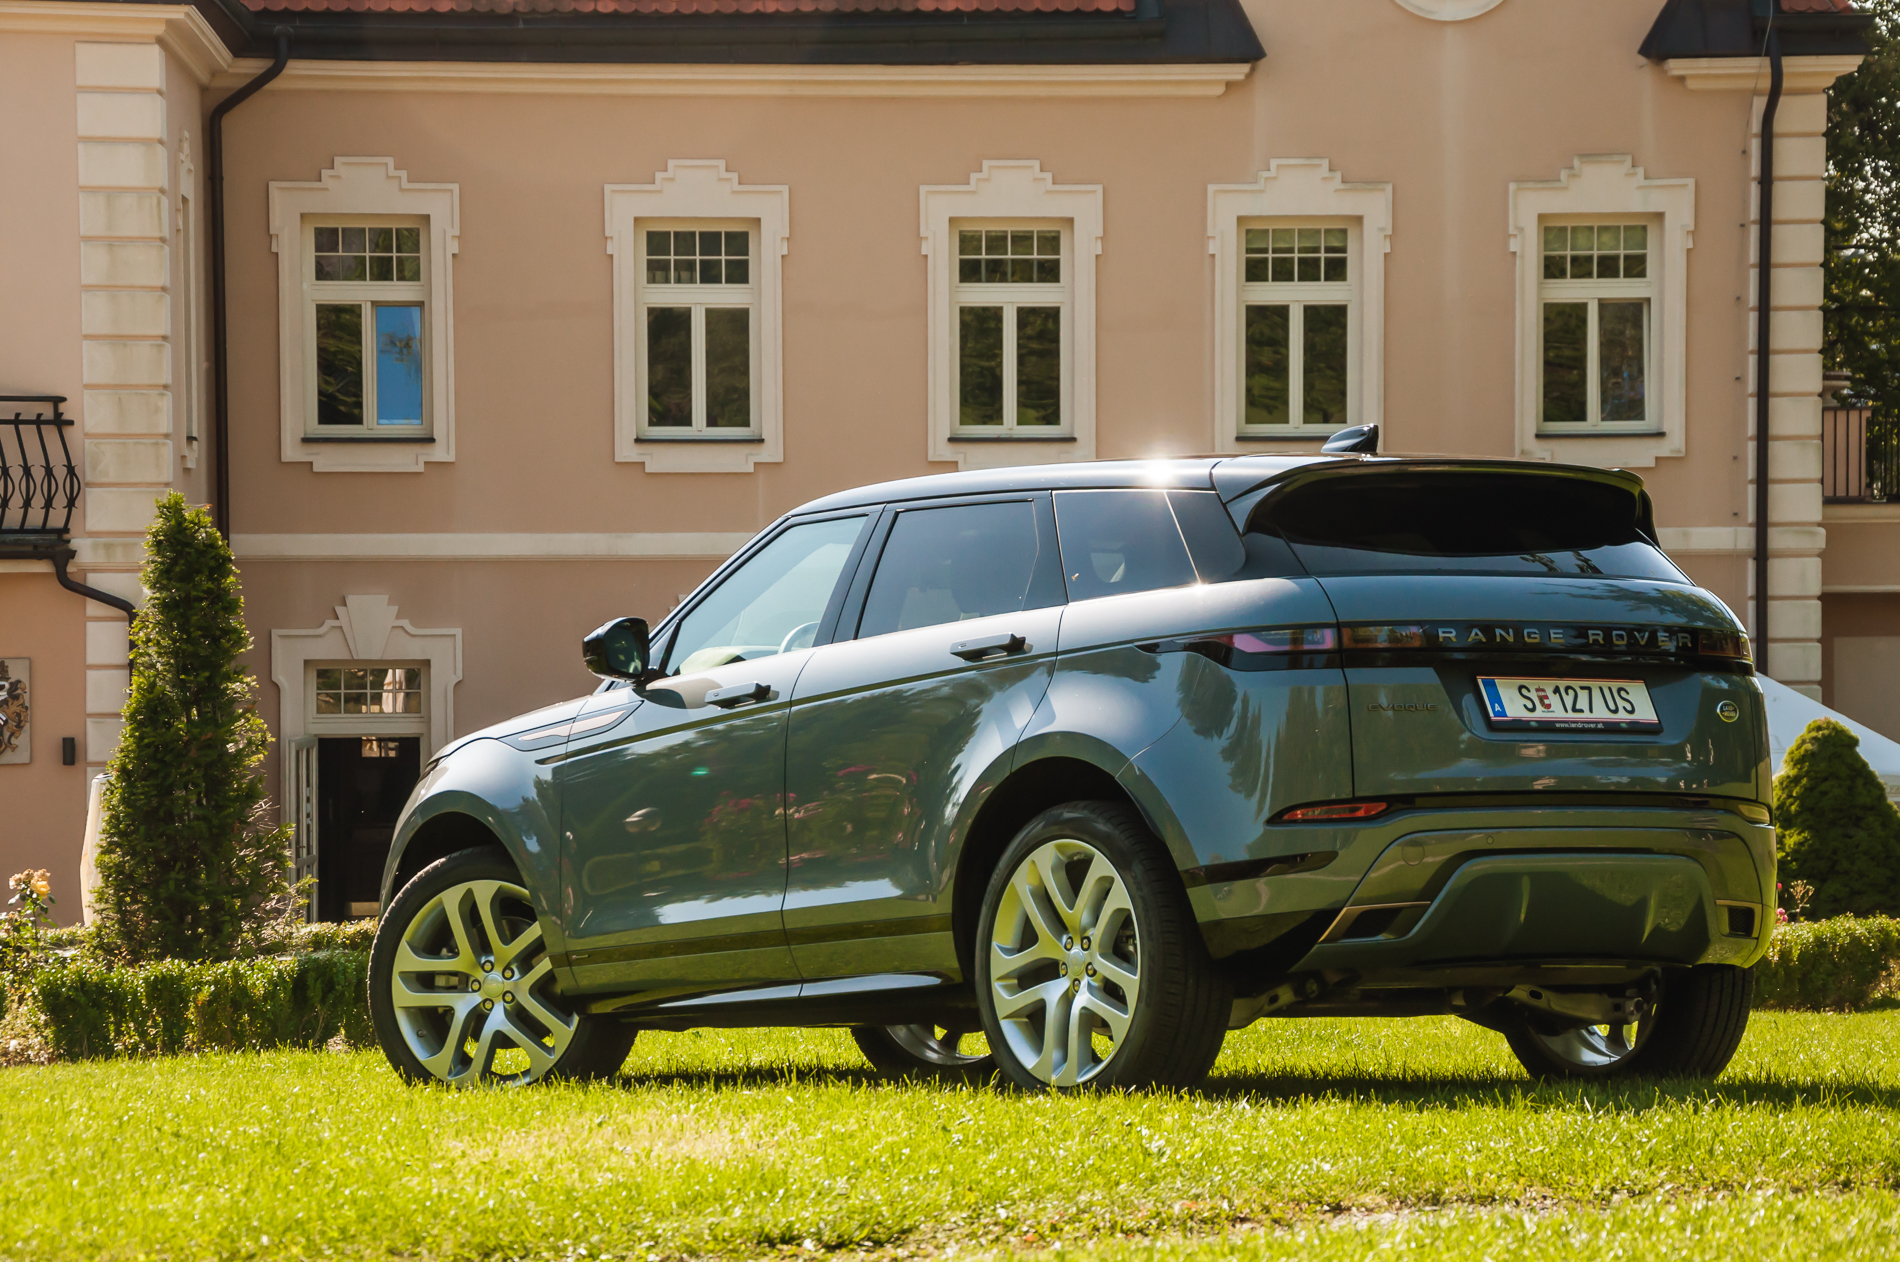 Range Rover Evoque 2020 (26 of 40)